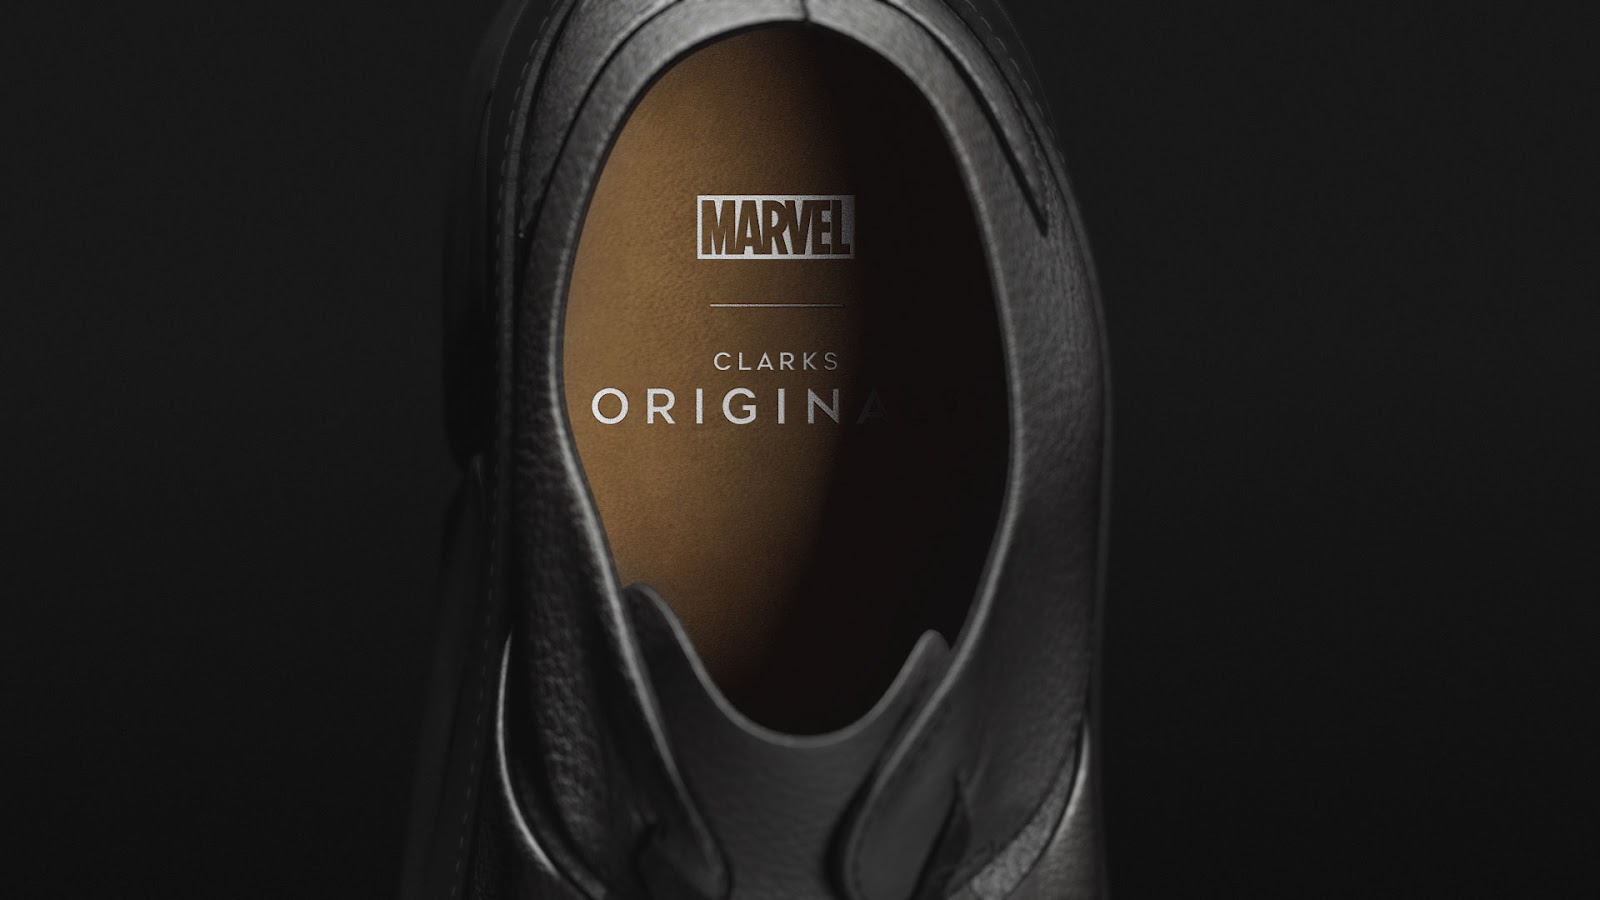 e58a3bdc21bd29 Clarks Originals unveils limited edition Black Panther-inspired shoe ...